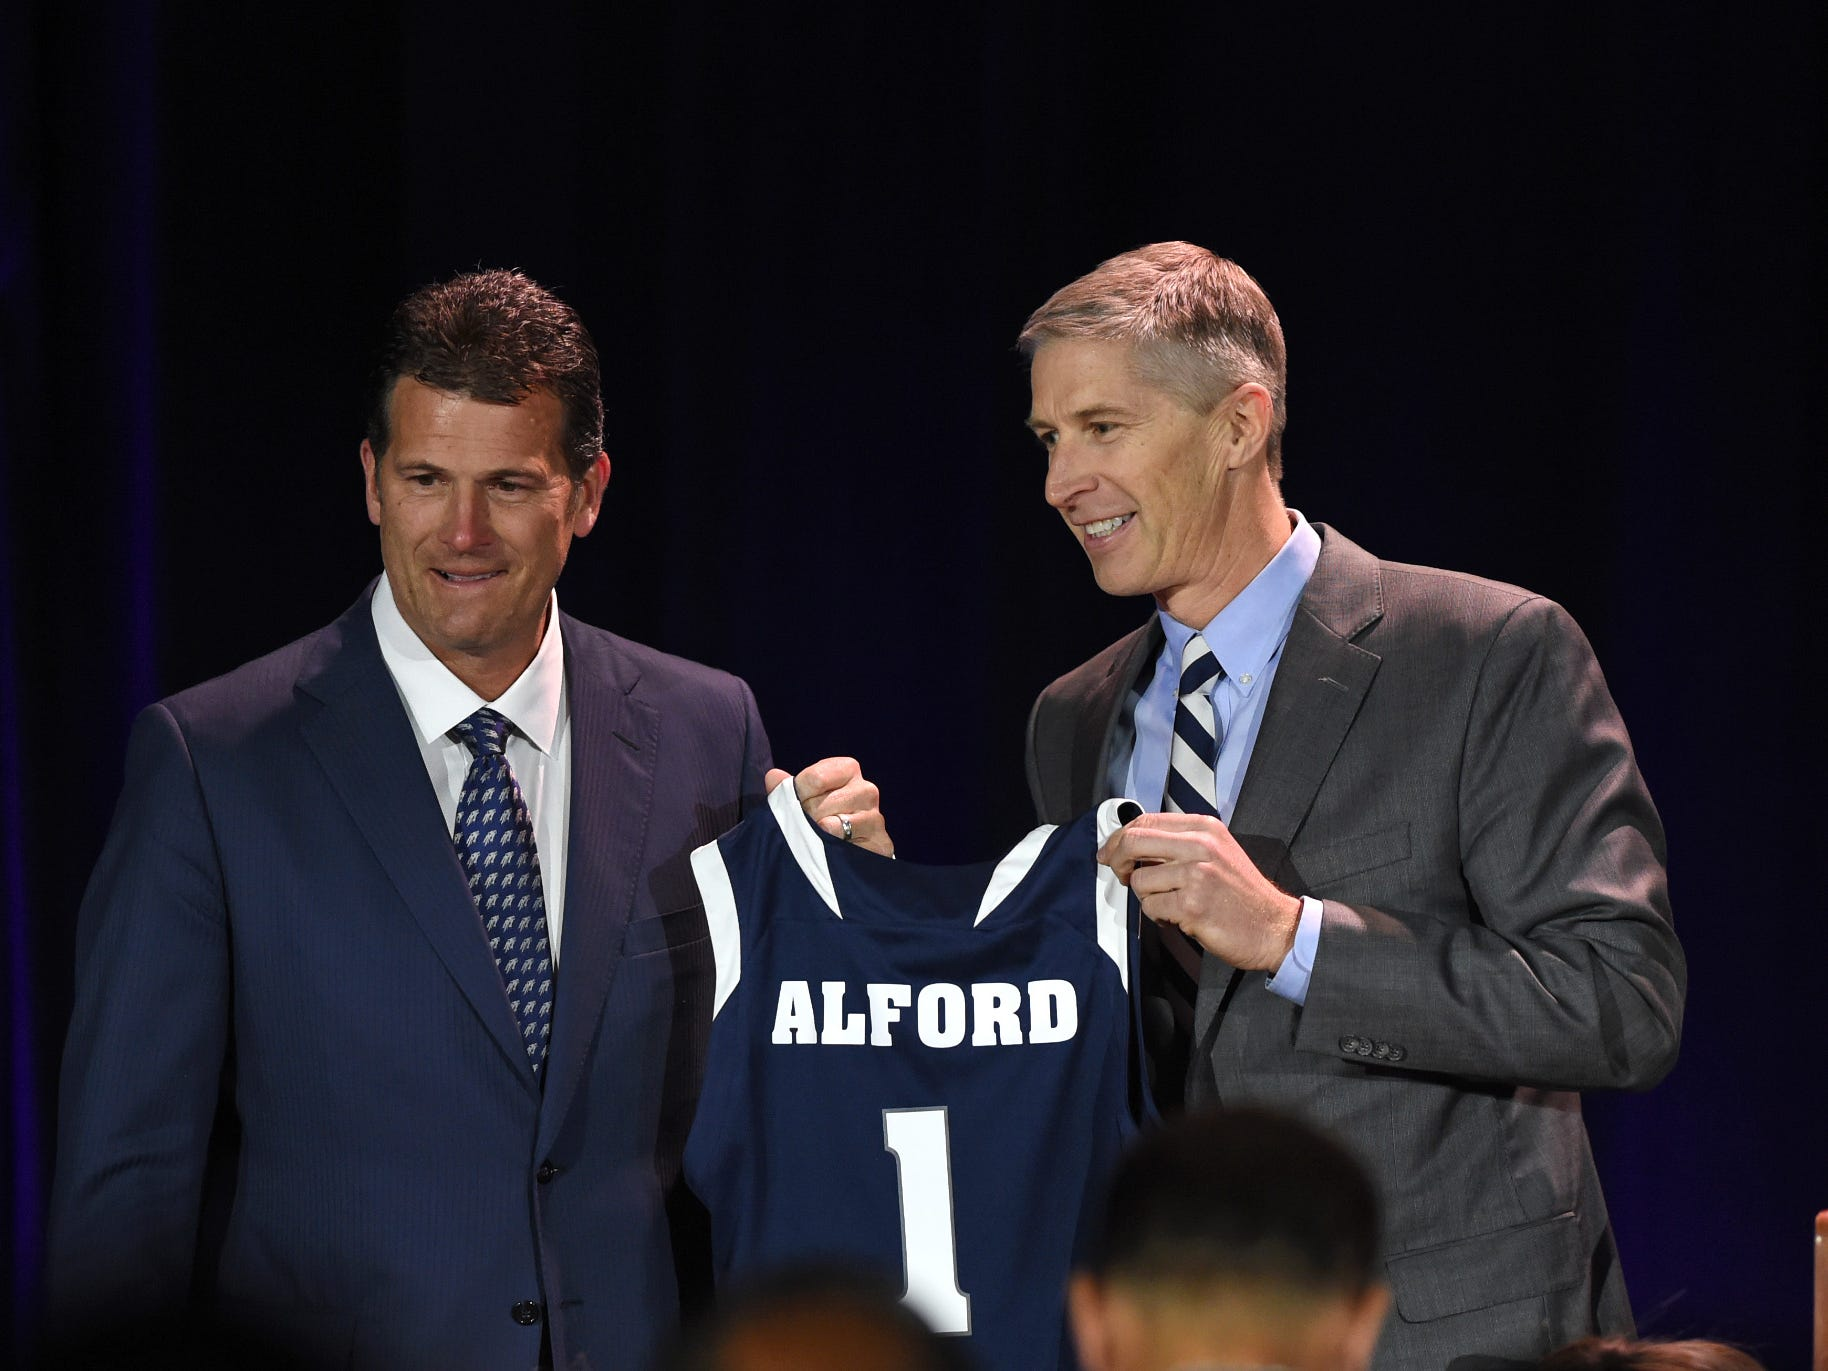 Nevada athletic Doug Knuth, right, introduces Steve Alford as the new Nevada basketball coach during a press conference at Lawlor Events Center in Reno, Nevada on April 12, 2019.